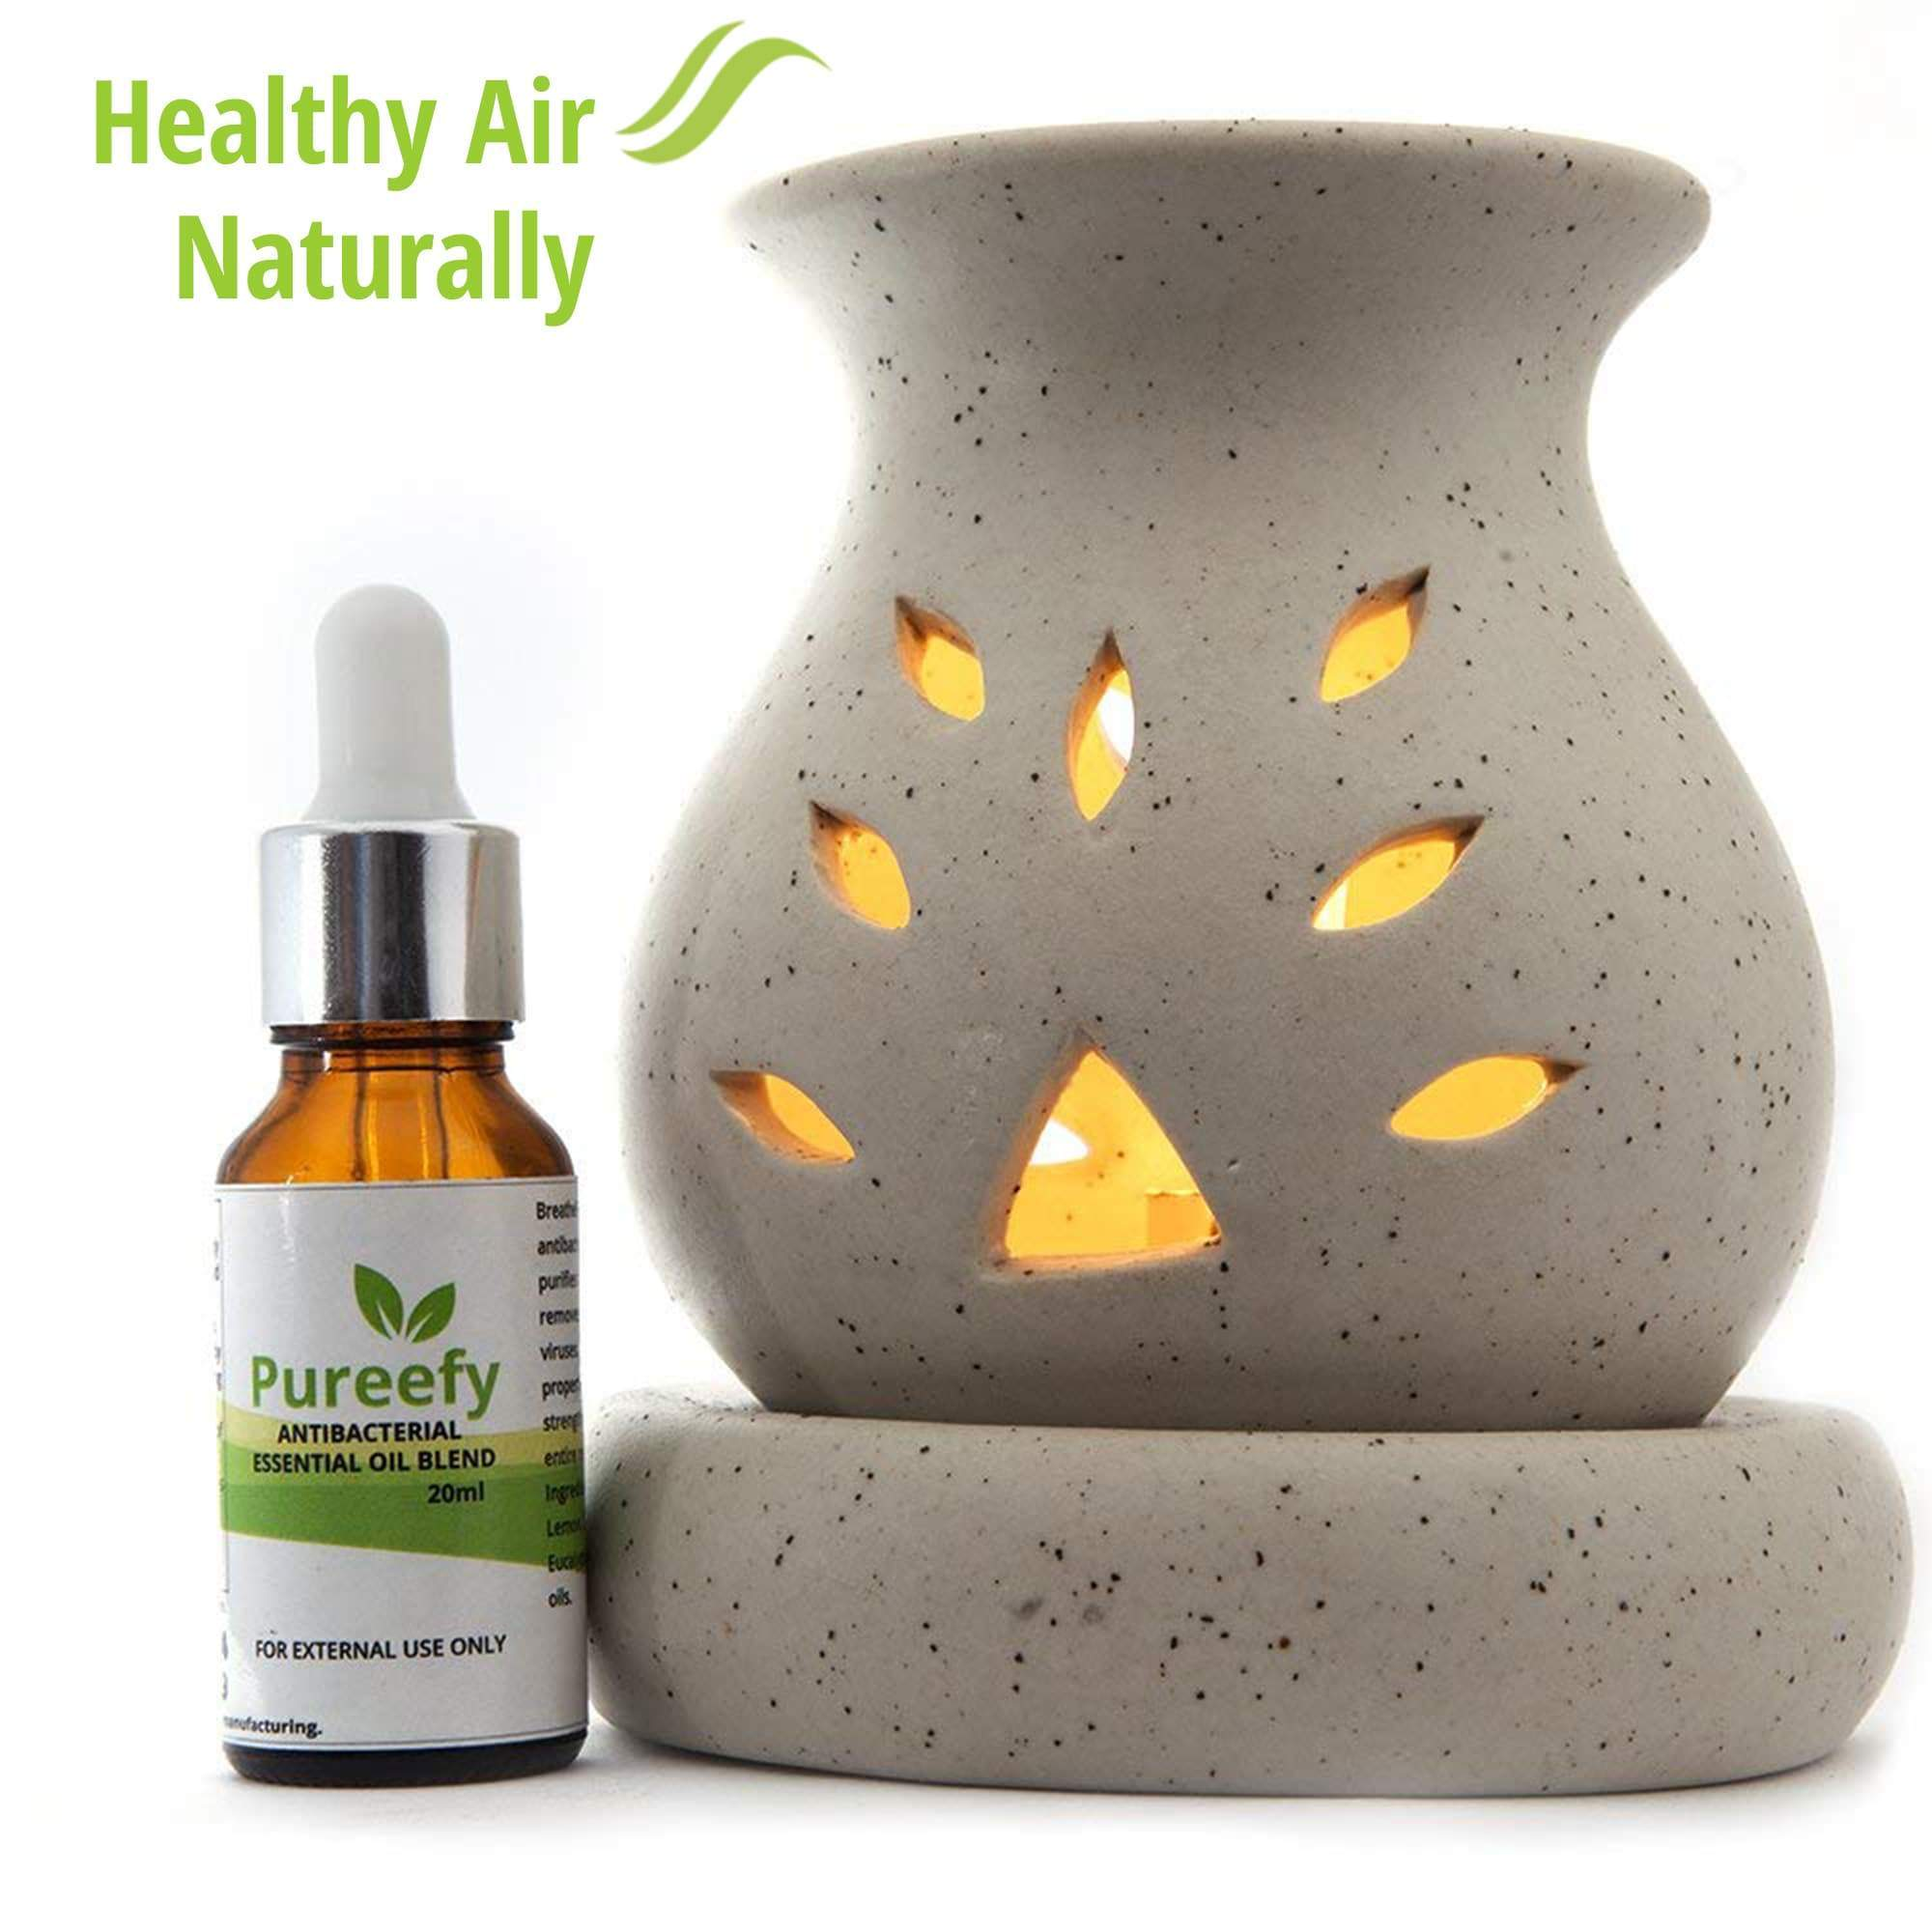 Antibacterial Essential Oil Blend with Electric Diffuser